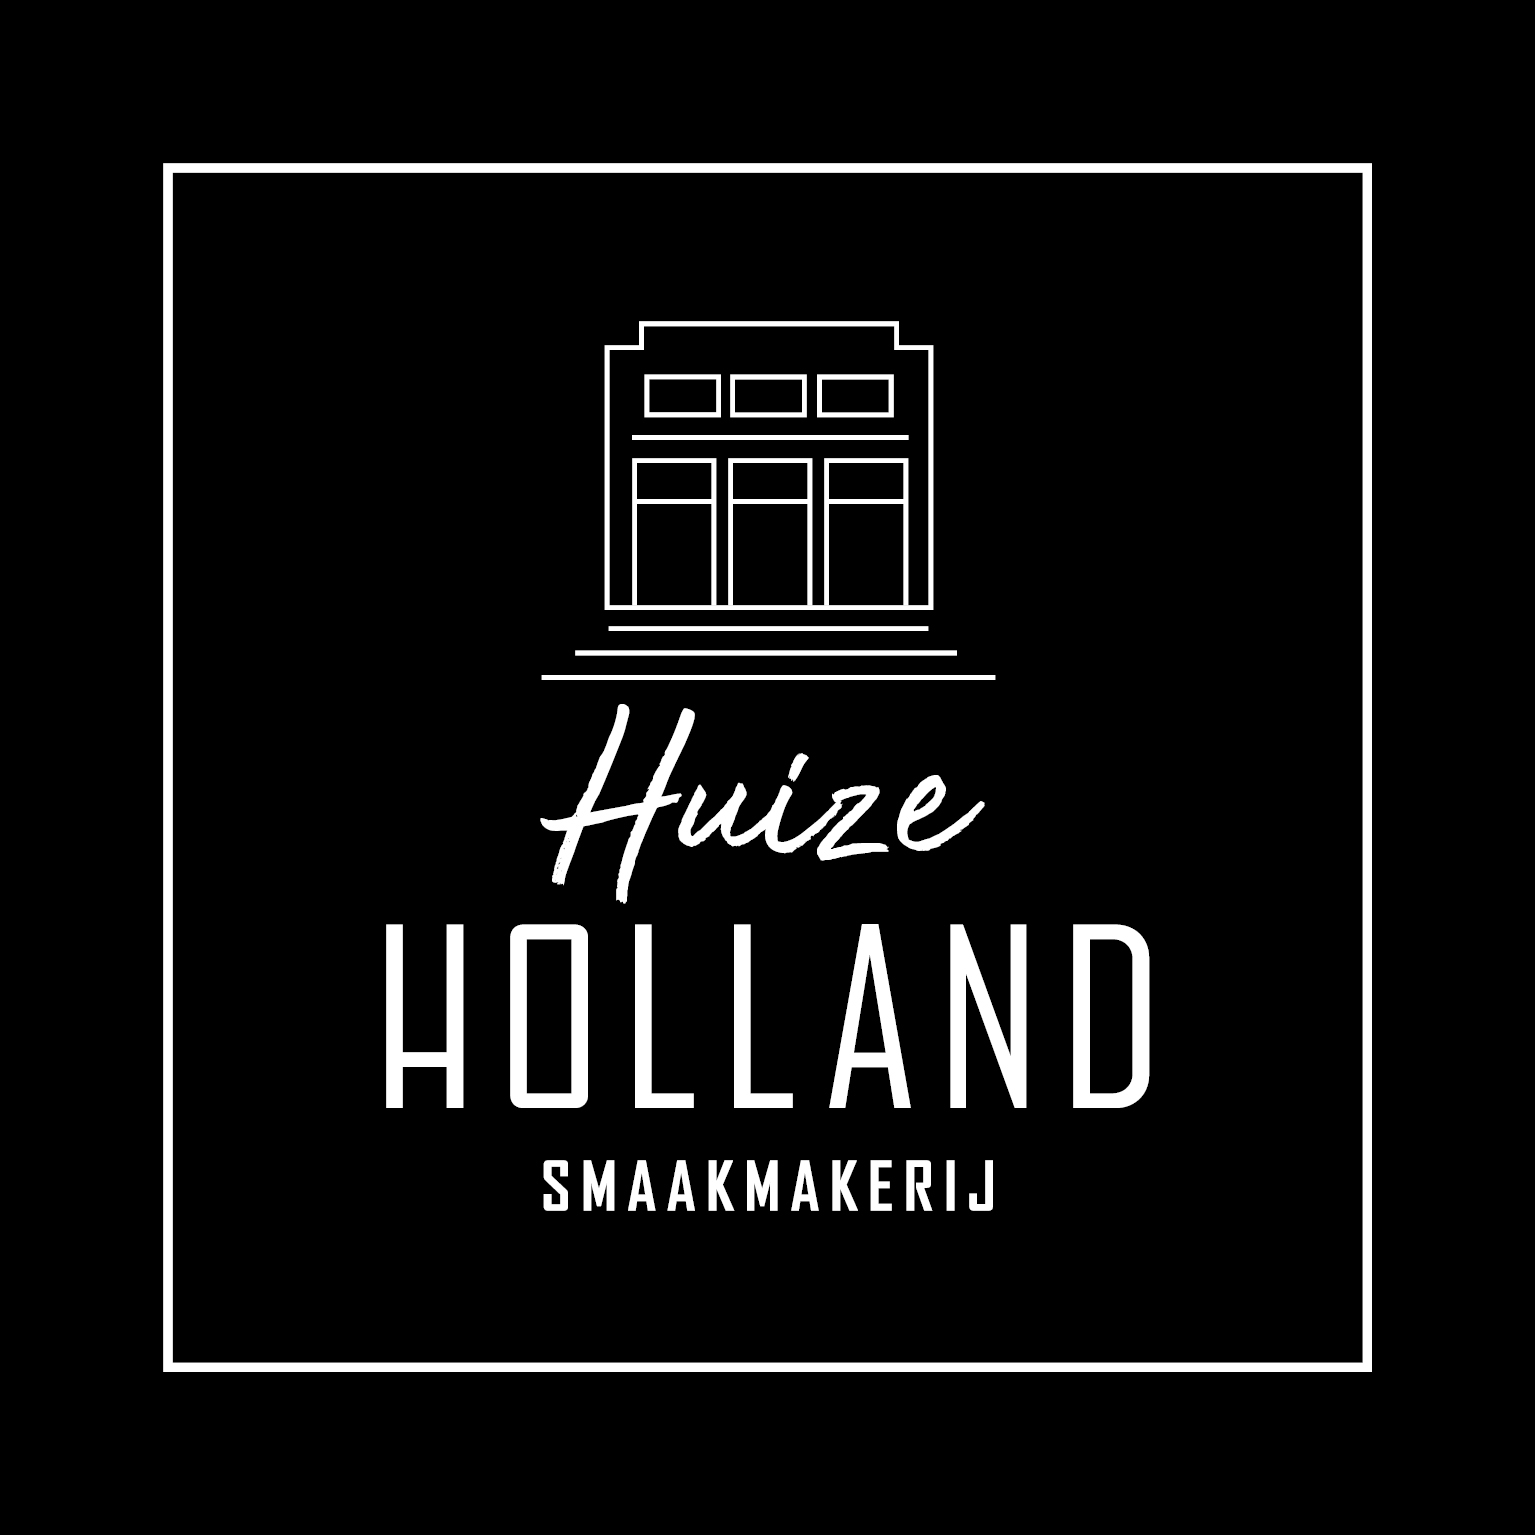 Huize Holland